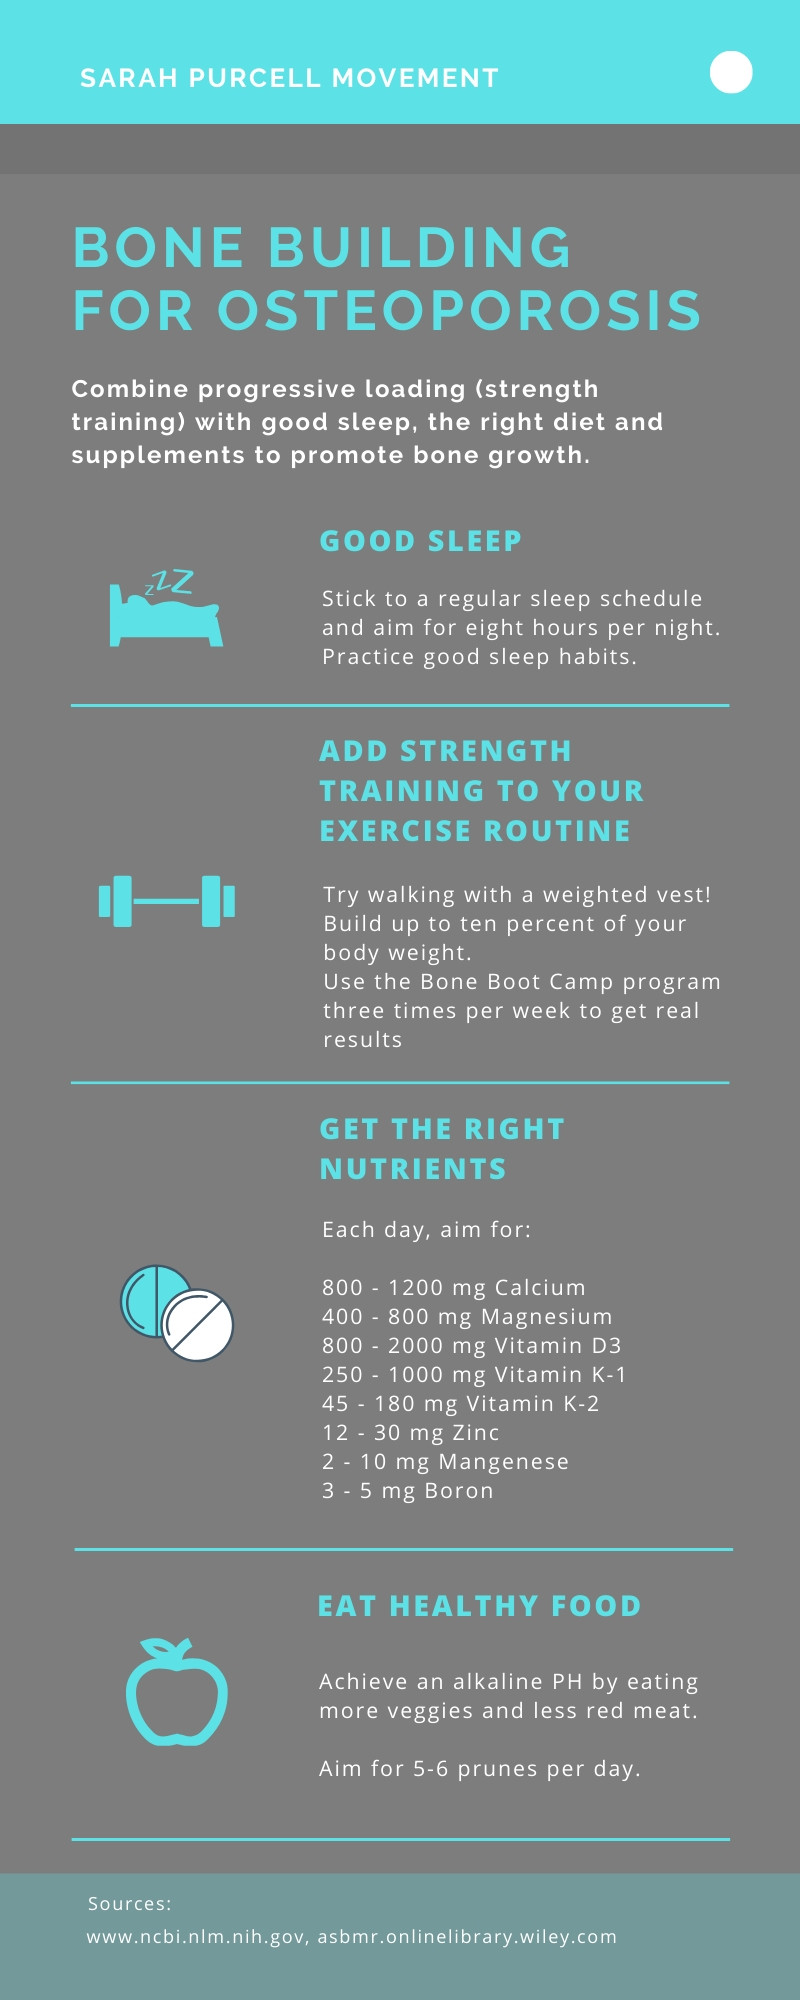 Diet, exercise, and nutrition tips for building bone